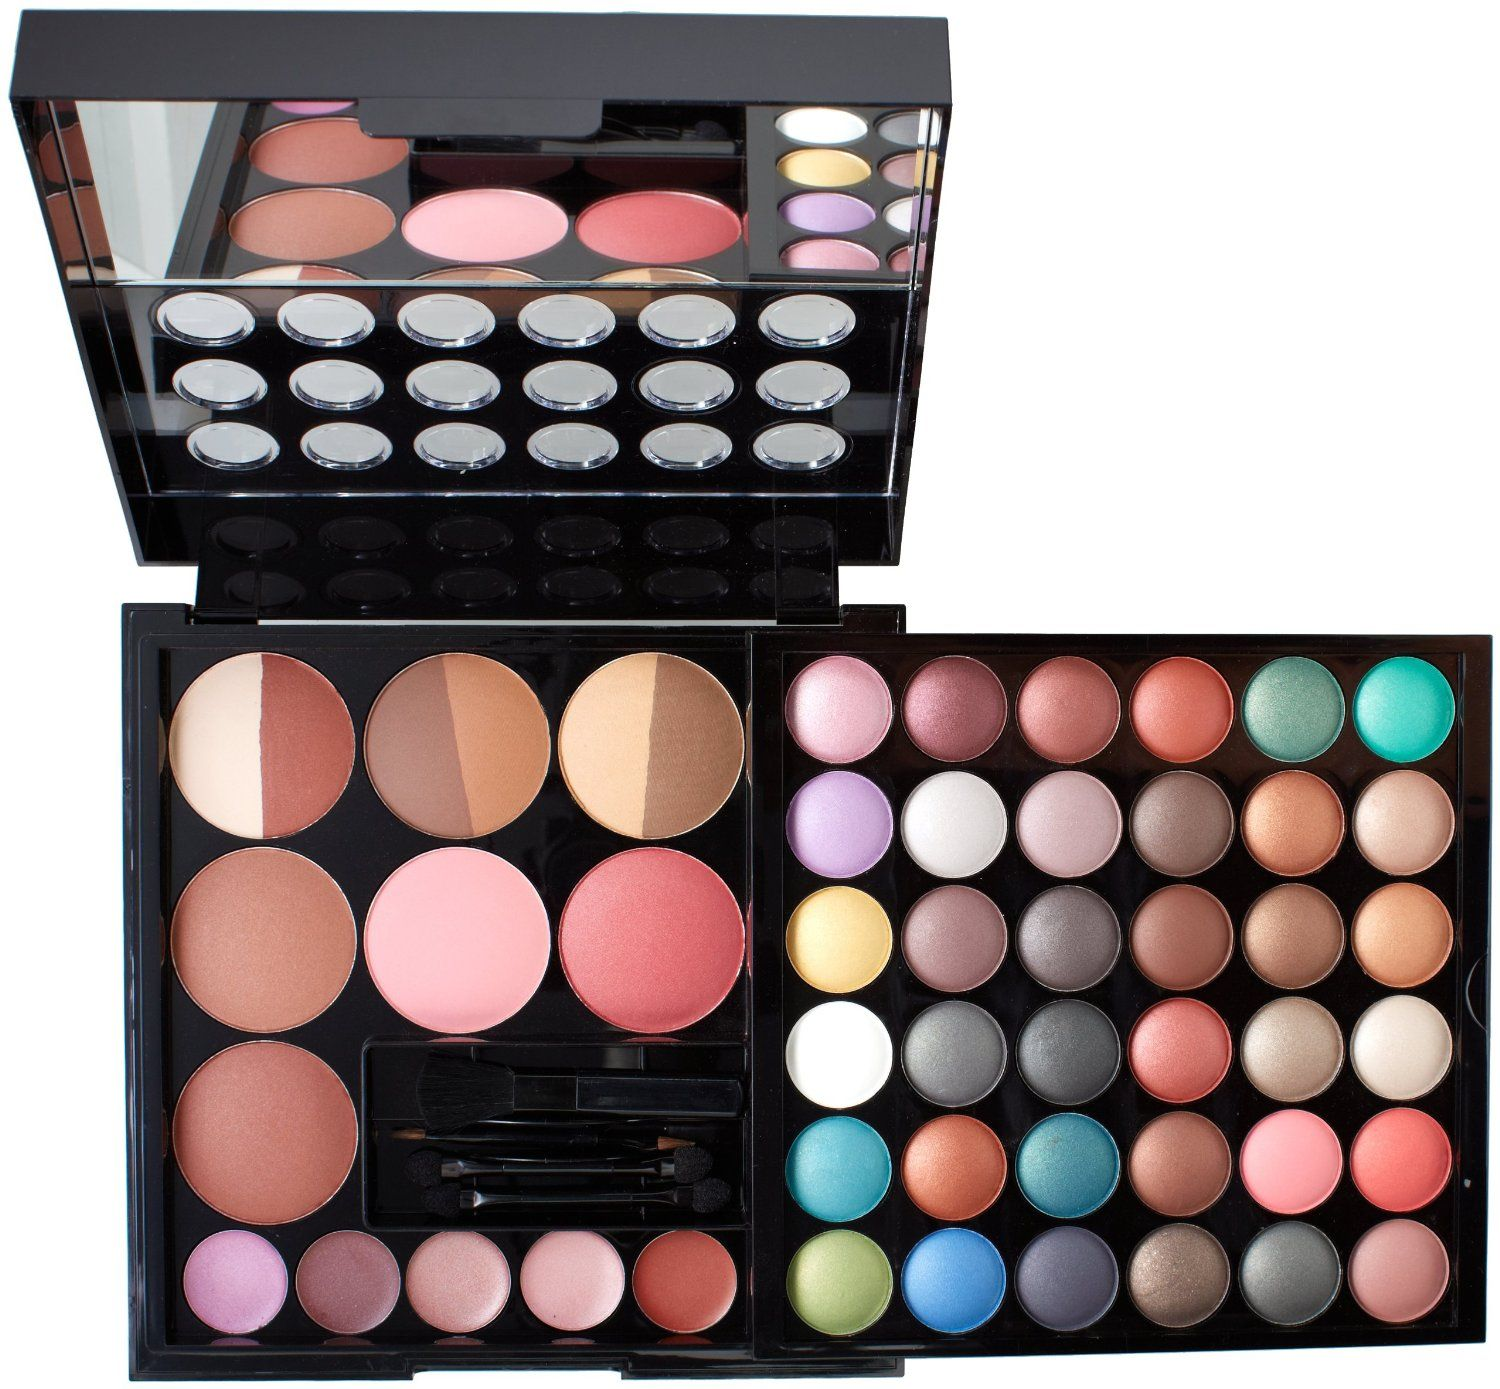 NYX Makeup Artist Kit35 Eyeshadows, 3 Bronzers